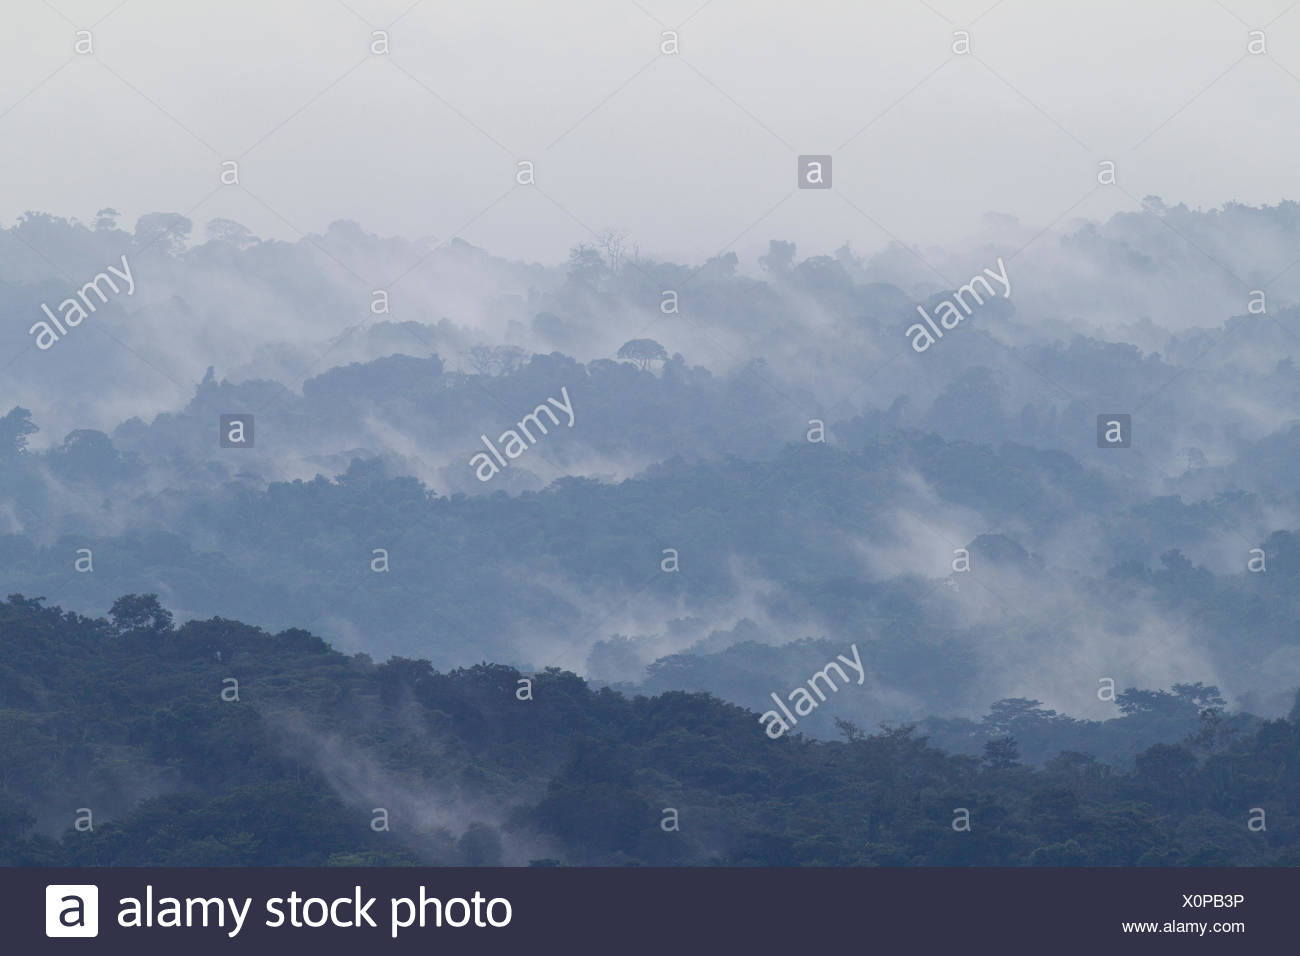 Tropical rainforest landscape with mist,  Barro Colorado Island, Gatun Lake, Panama Canal, Panama. - Stock Image